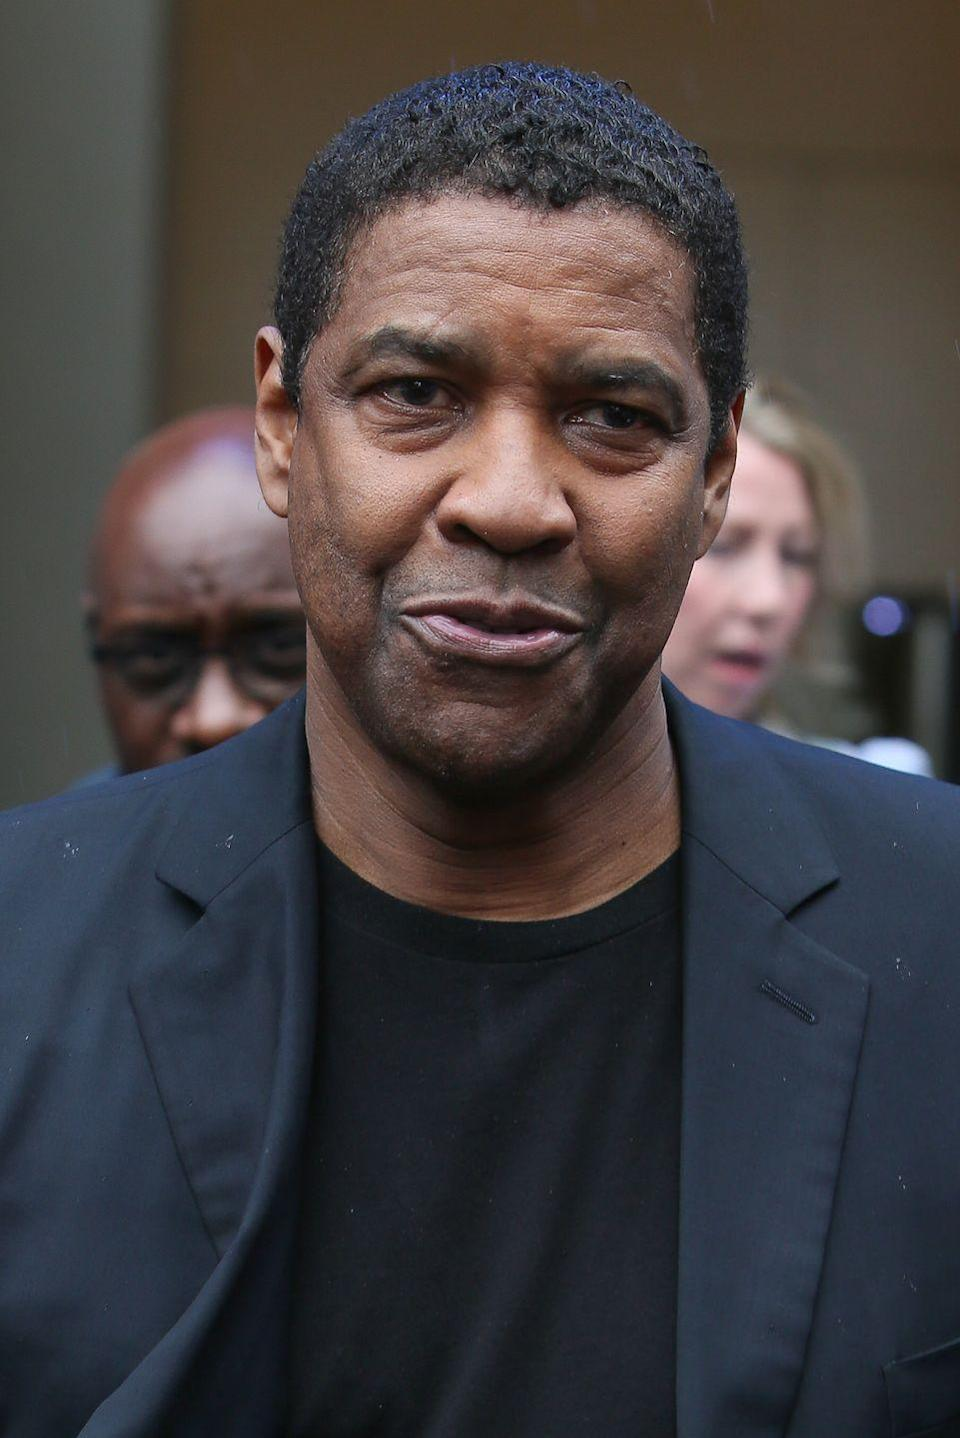 <p>The penultimate leading man continues to star in critically acclaimed films like <em>Fences</em> and <em>Roman J. Israel, Esq.</em></p>